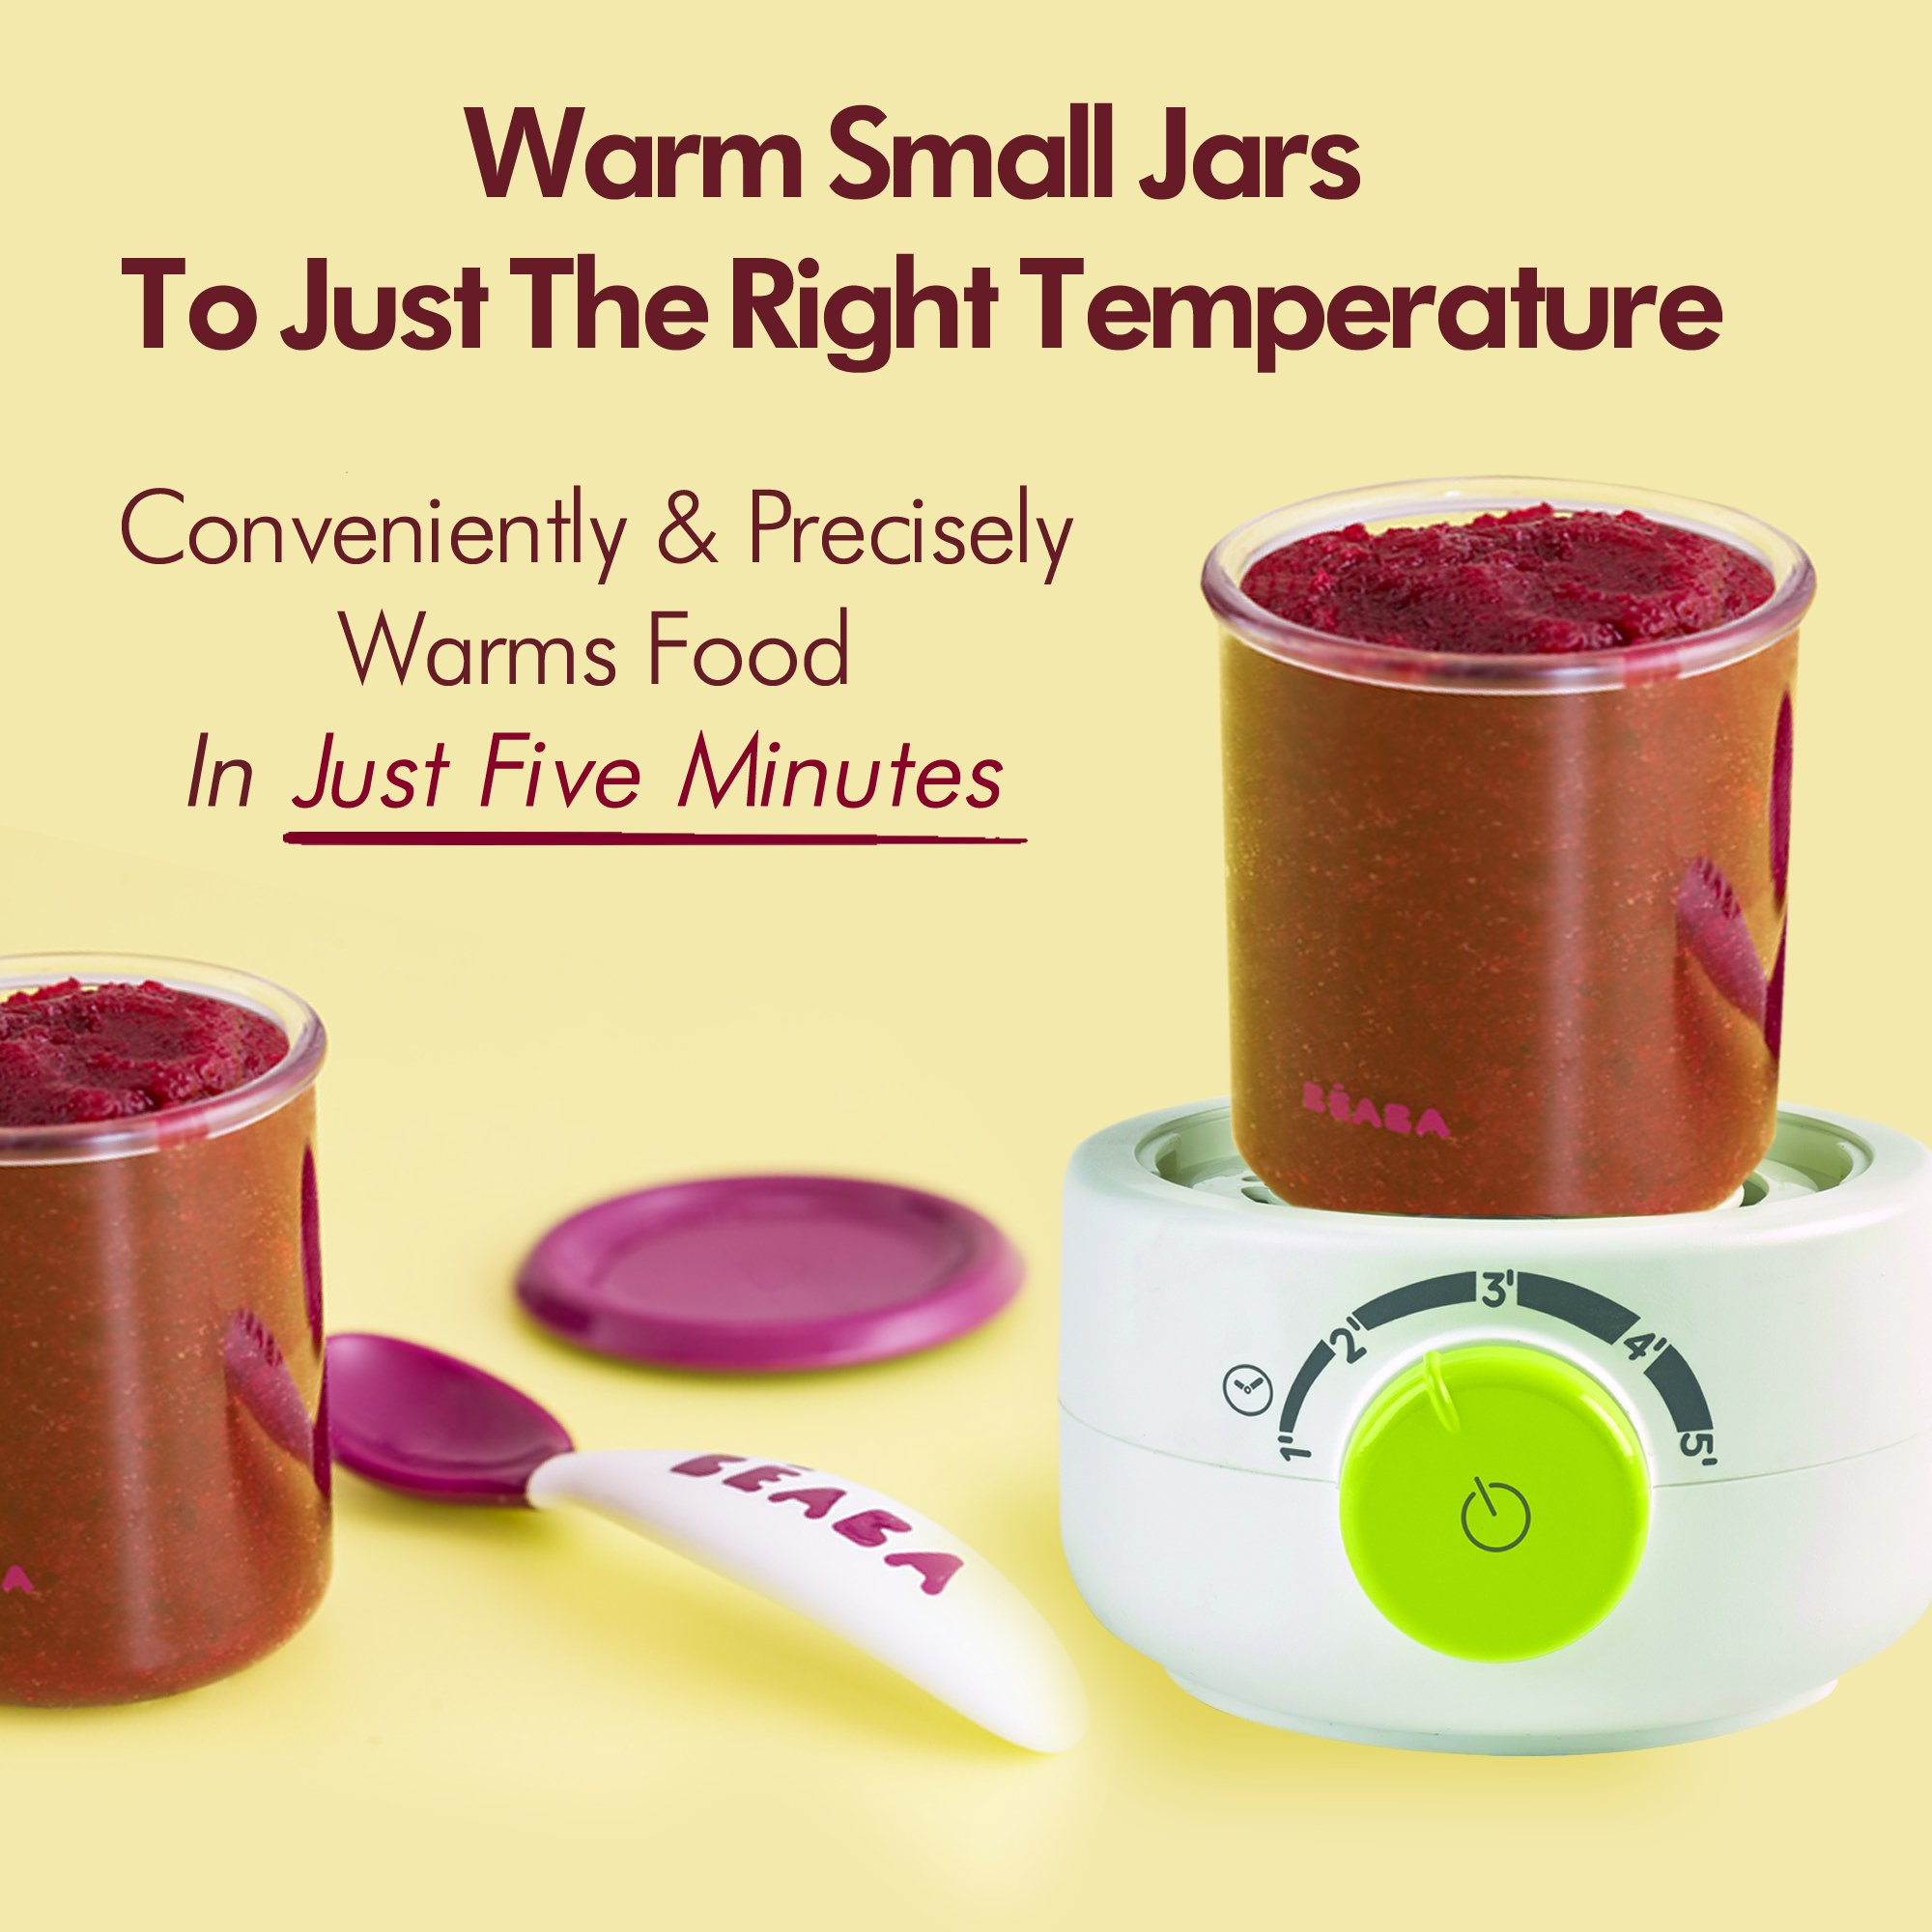 BEABA Quick Baby Bottle Warmer, Steam Sterilizer, Baby Food Heater (3-in-1) Warm Milk in Just Two Minutes, BPA and Lead Free, Simple Temperature Control, Fits All Bottle Sizes - Even Wide Neck, Neon by BEABA (Image #3)